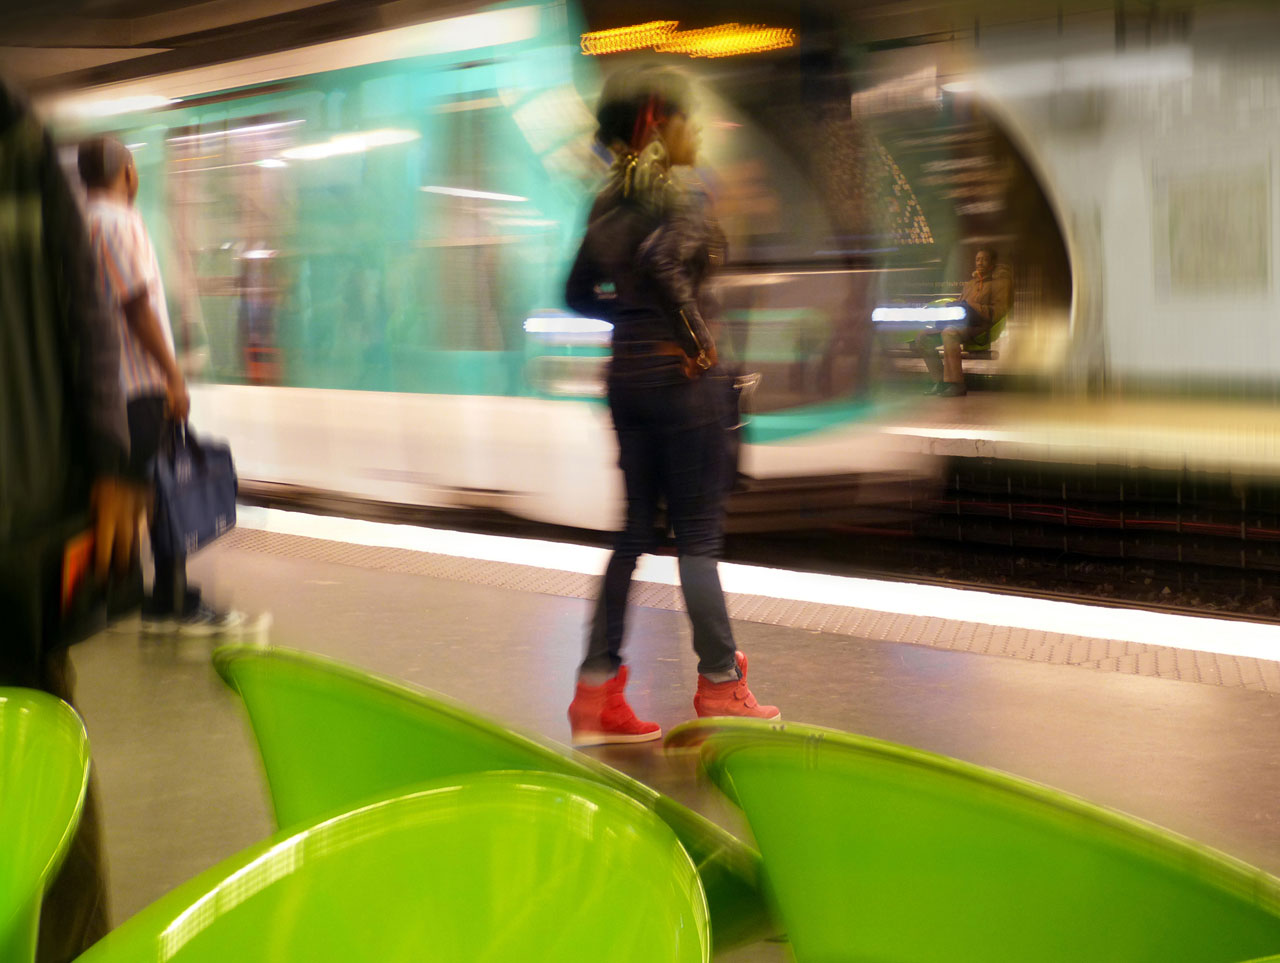 Green chairs, Paris, France, 2013.